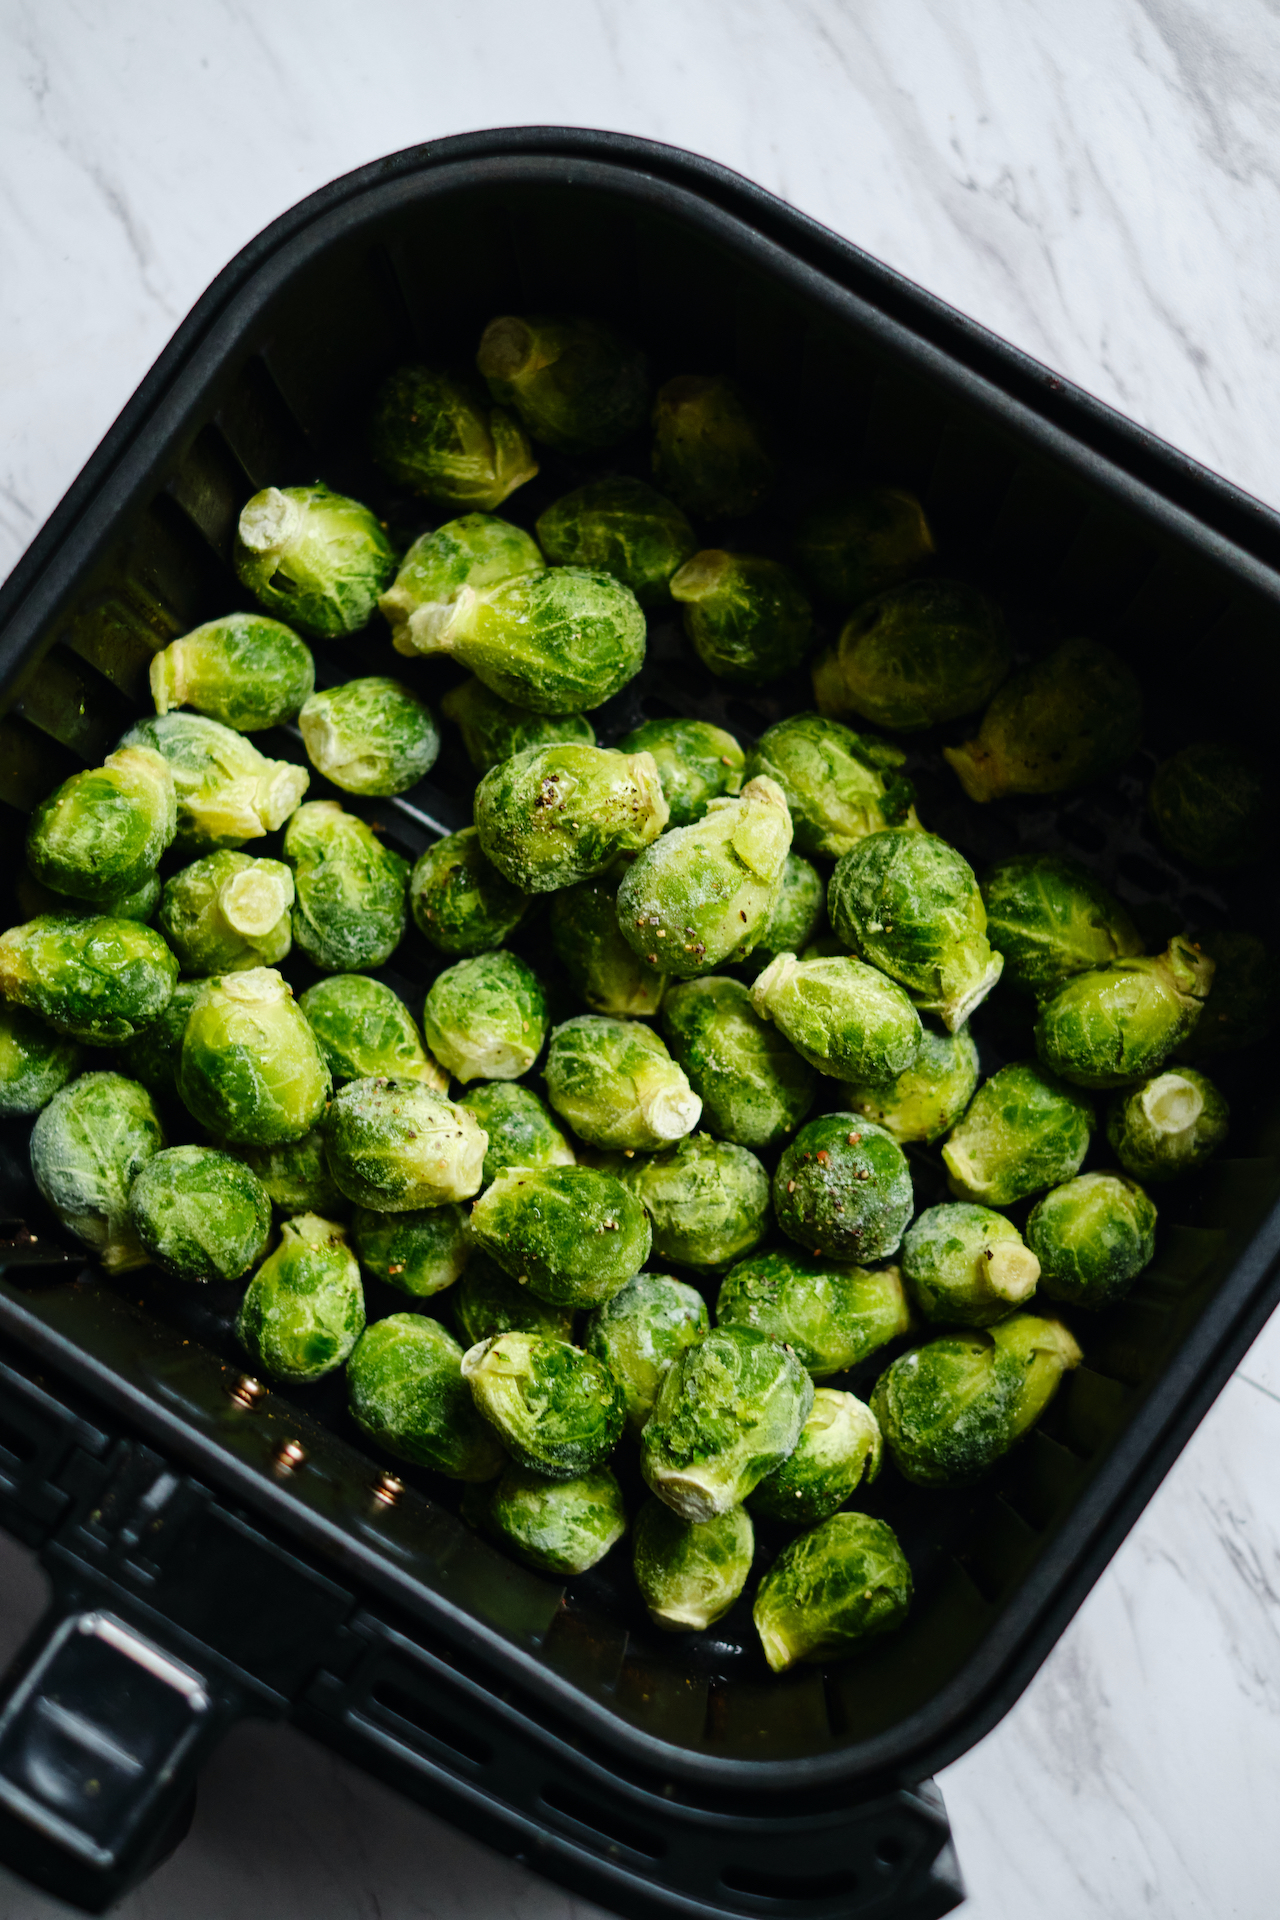 sprouts in the basket of an air fryer prior to cooking